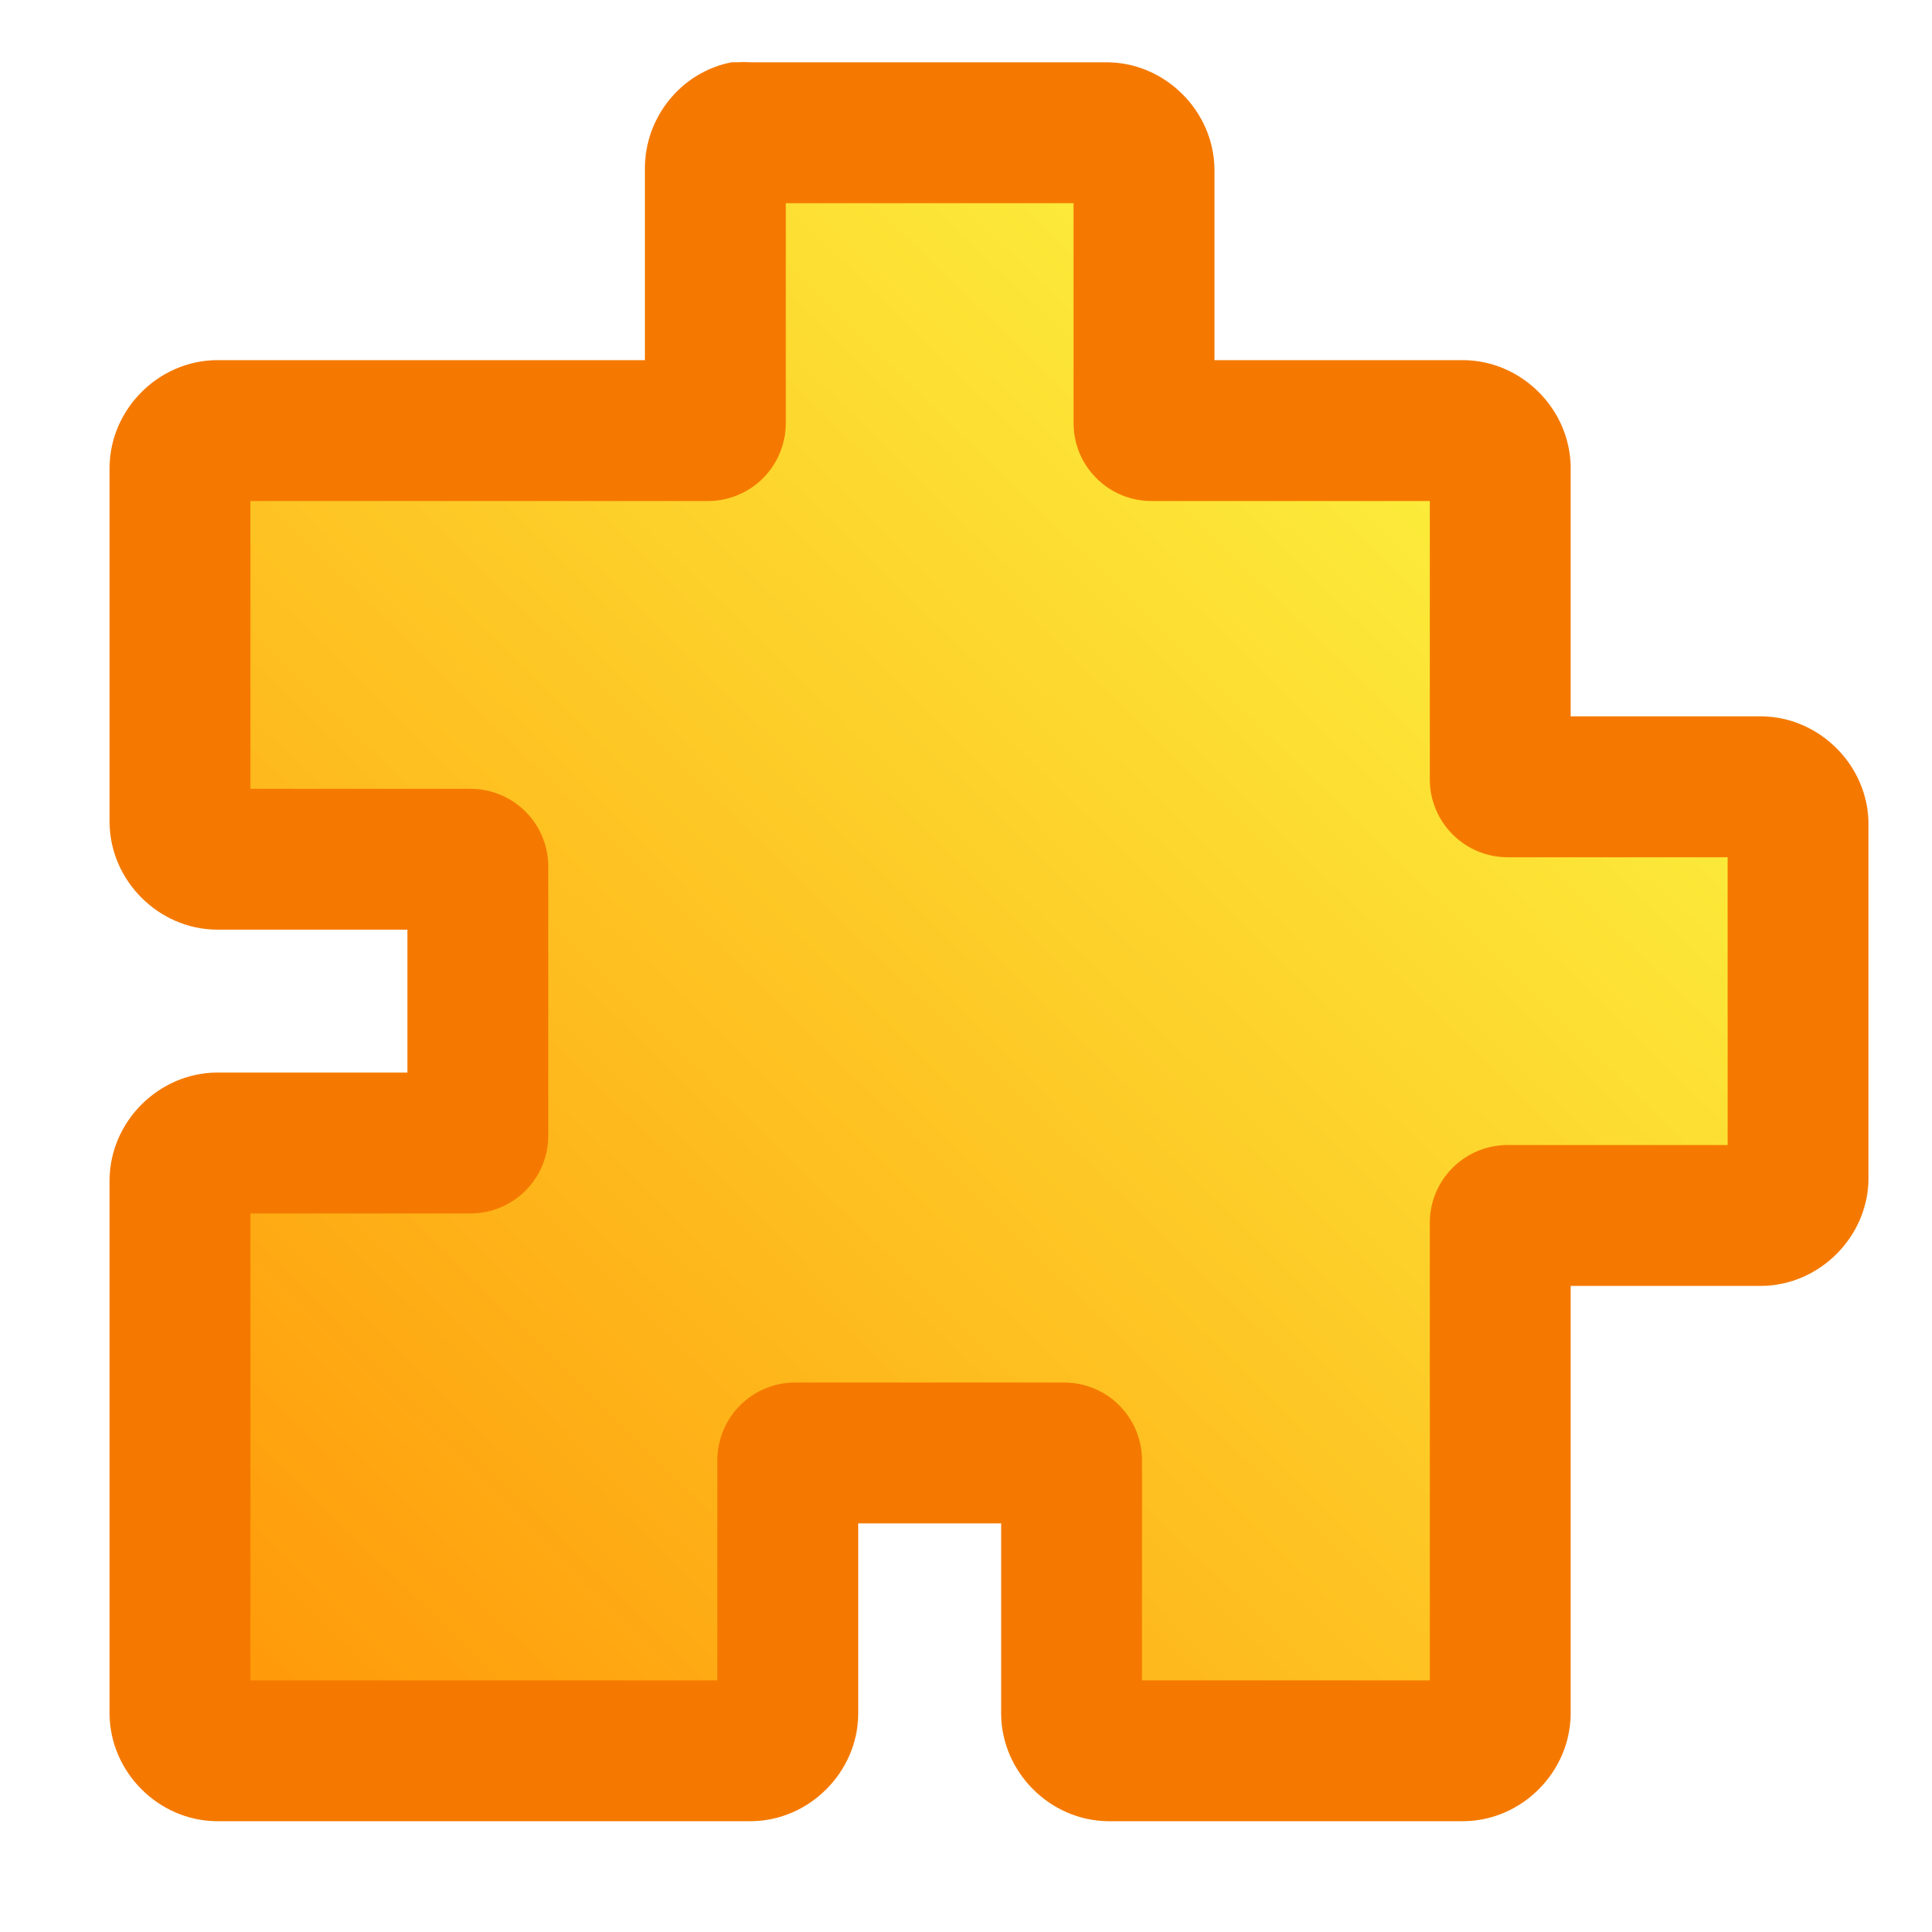 icon-puzzle-yellow by jean_victor_balin